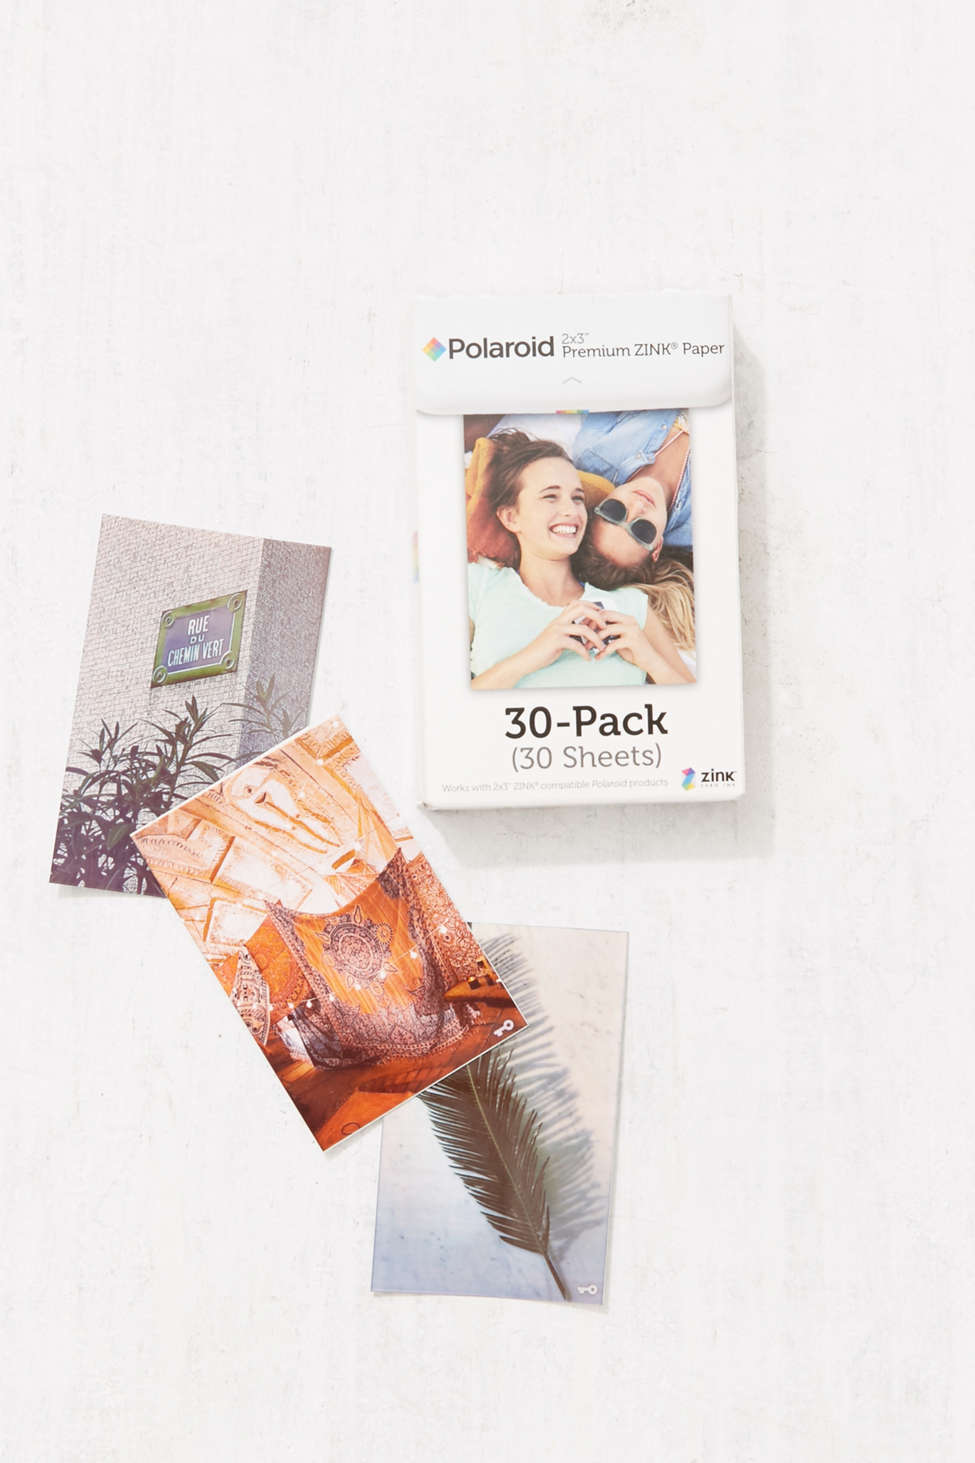 Polaroid Instant Zink 2x3 Sticker Film Urban Outfitters